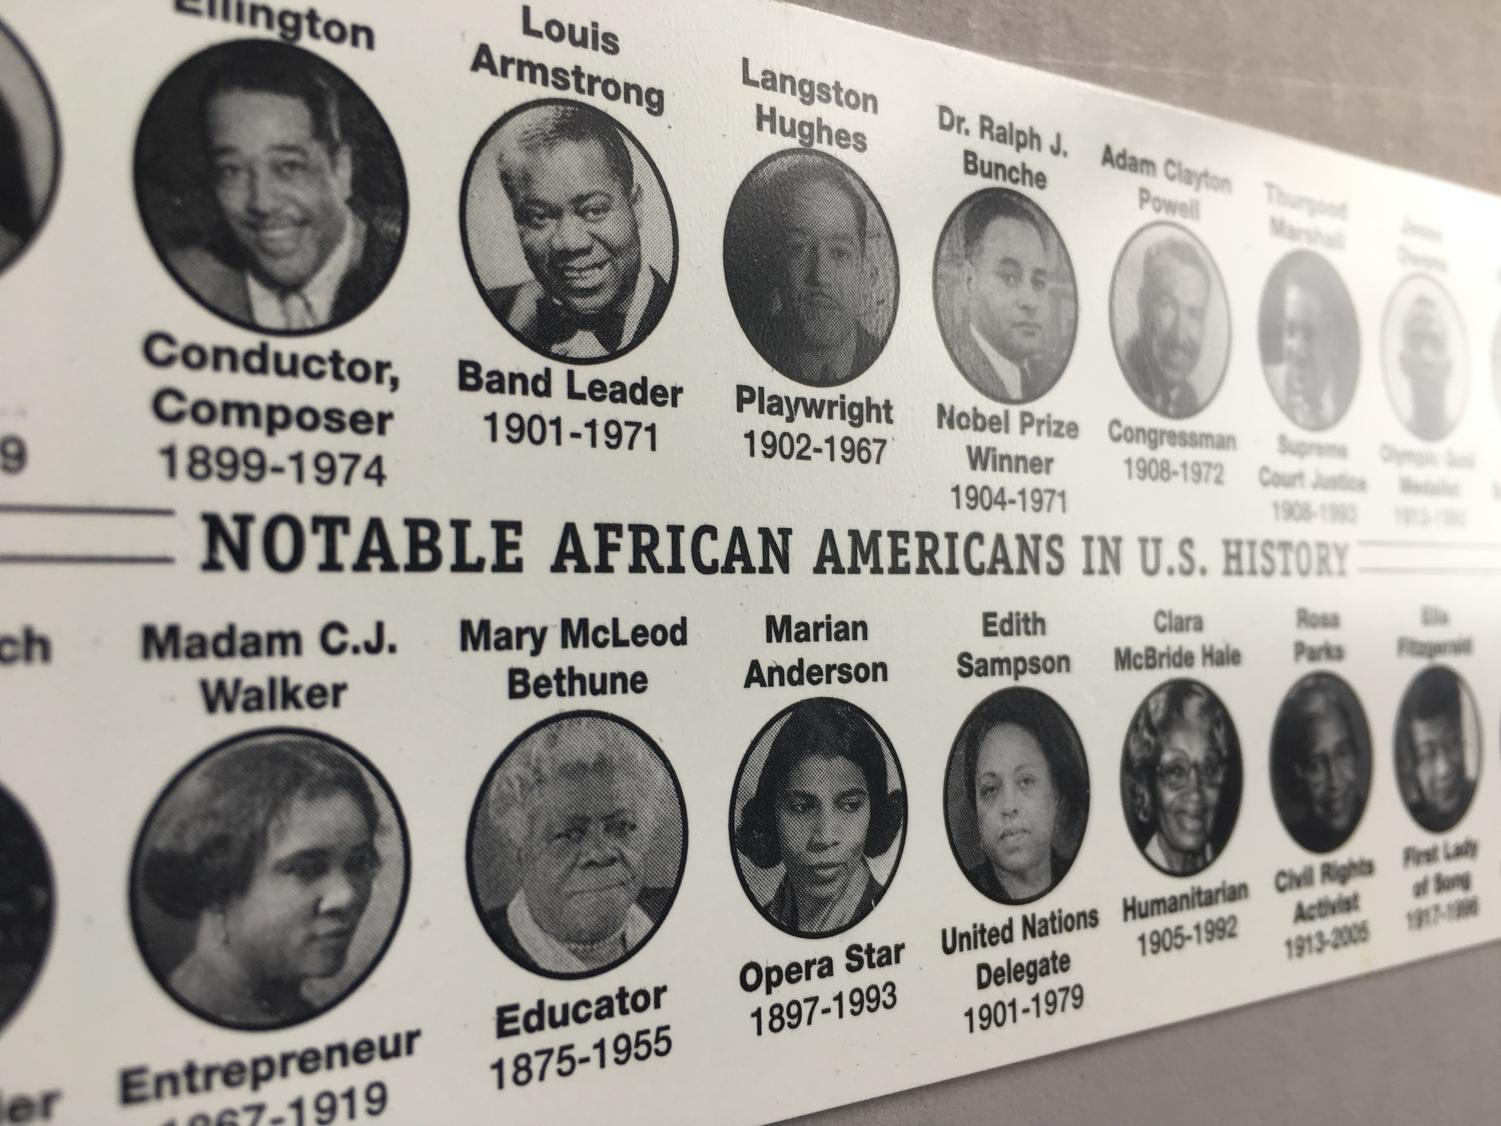 Every February, students remember notable African Americans for their suppressed accomplishments and efforts in the fight for racial equality. Although learning about these people nourishes the minds of young students, historians and educators alike deprive a multitude of African American figures of the credit they deserve.